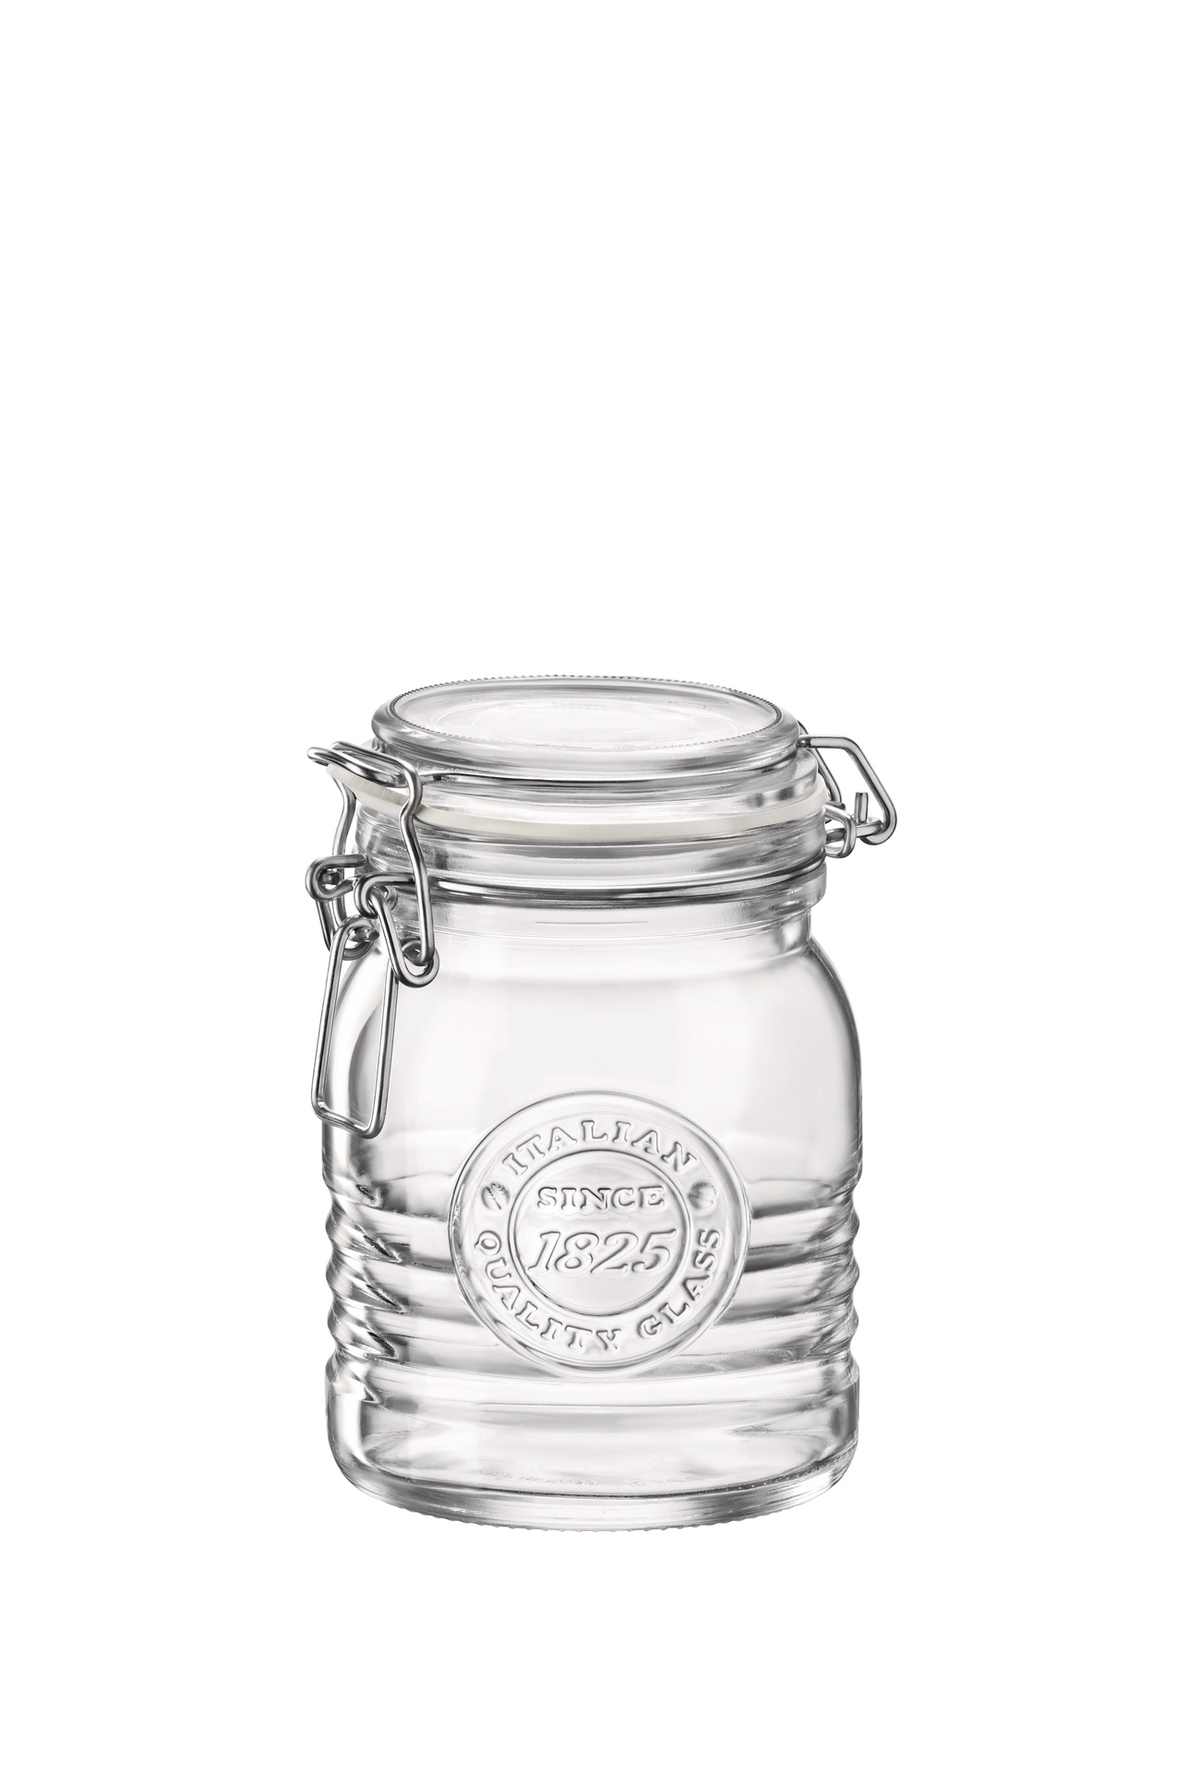 Bocal hermétique transparent verre 50 cl Ø 96,50 mm Officina 1825 Bormioli Rocco